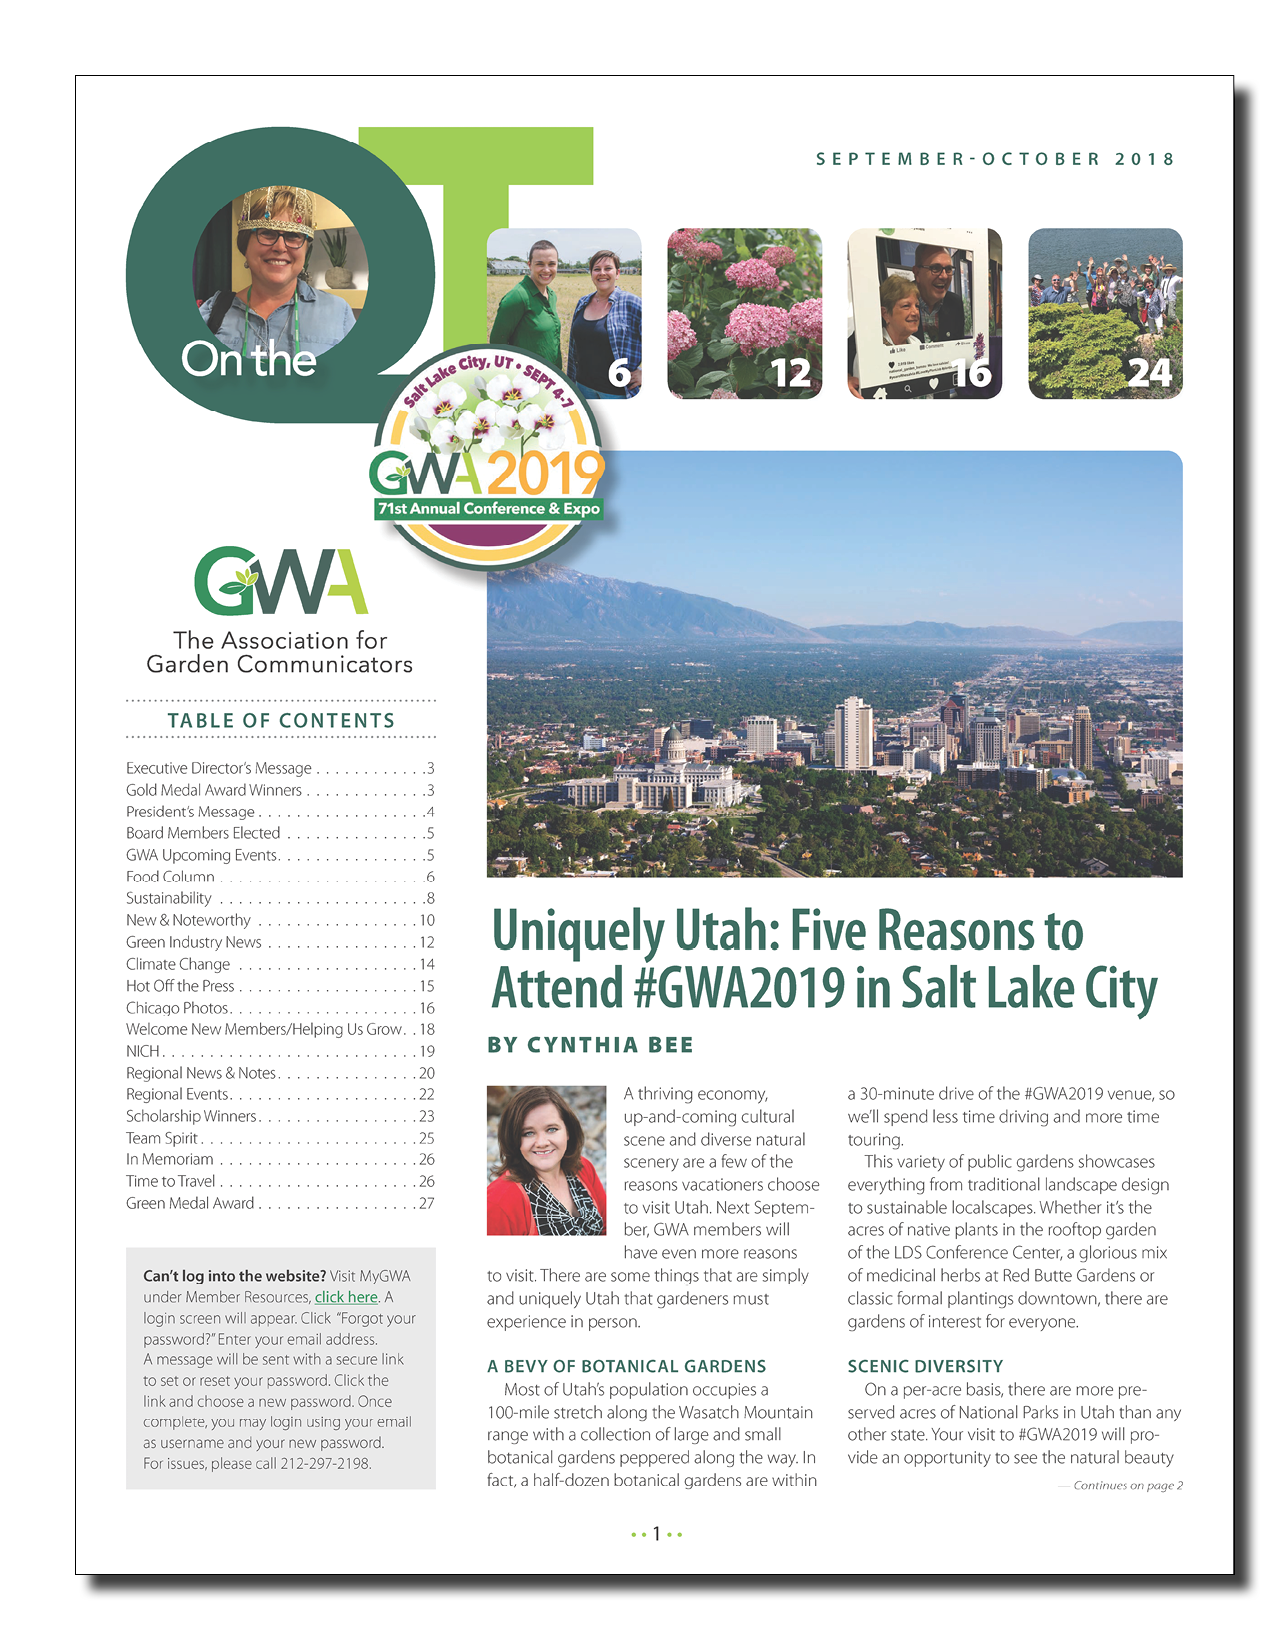 Uniquely Utah: Five Reasons to Attend #GWA2019 in Salt Lake City